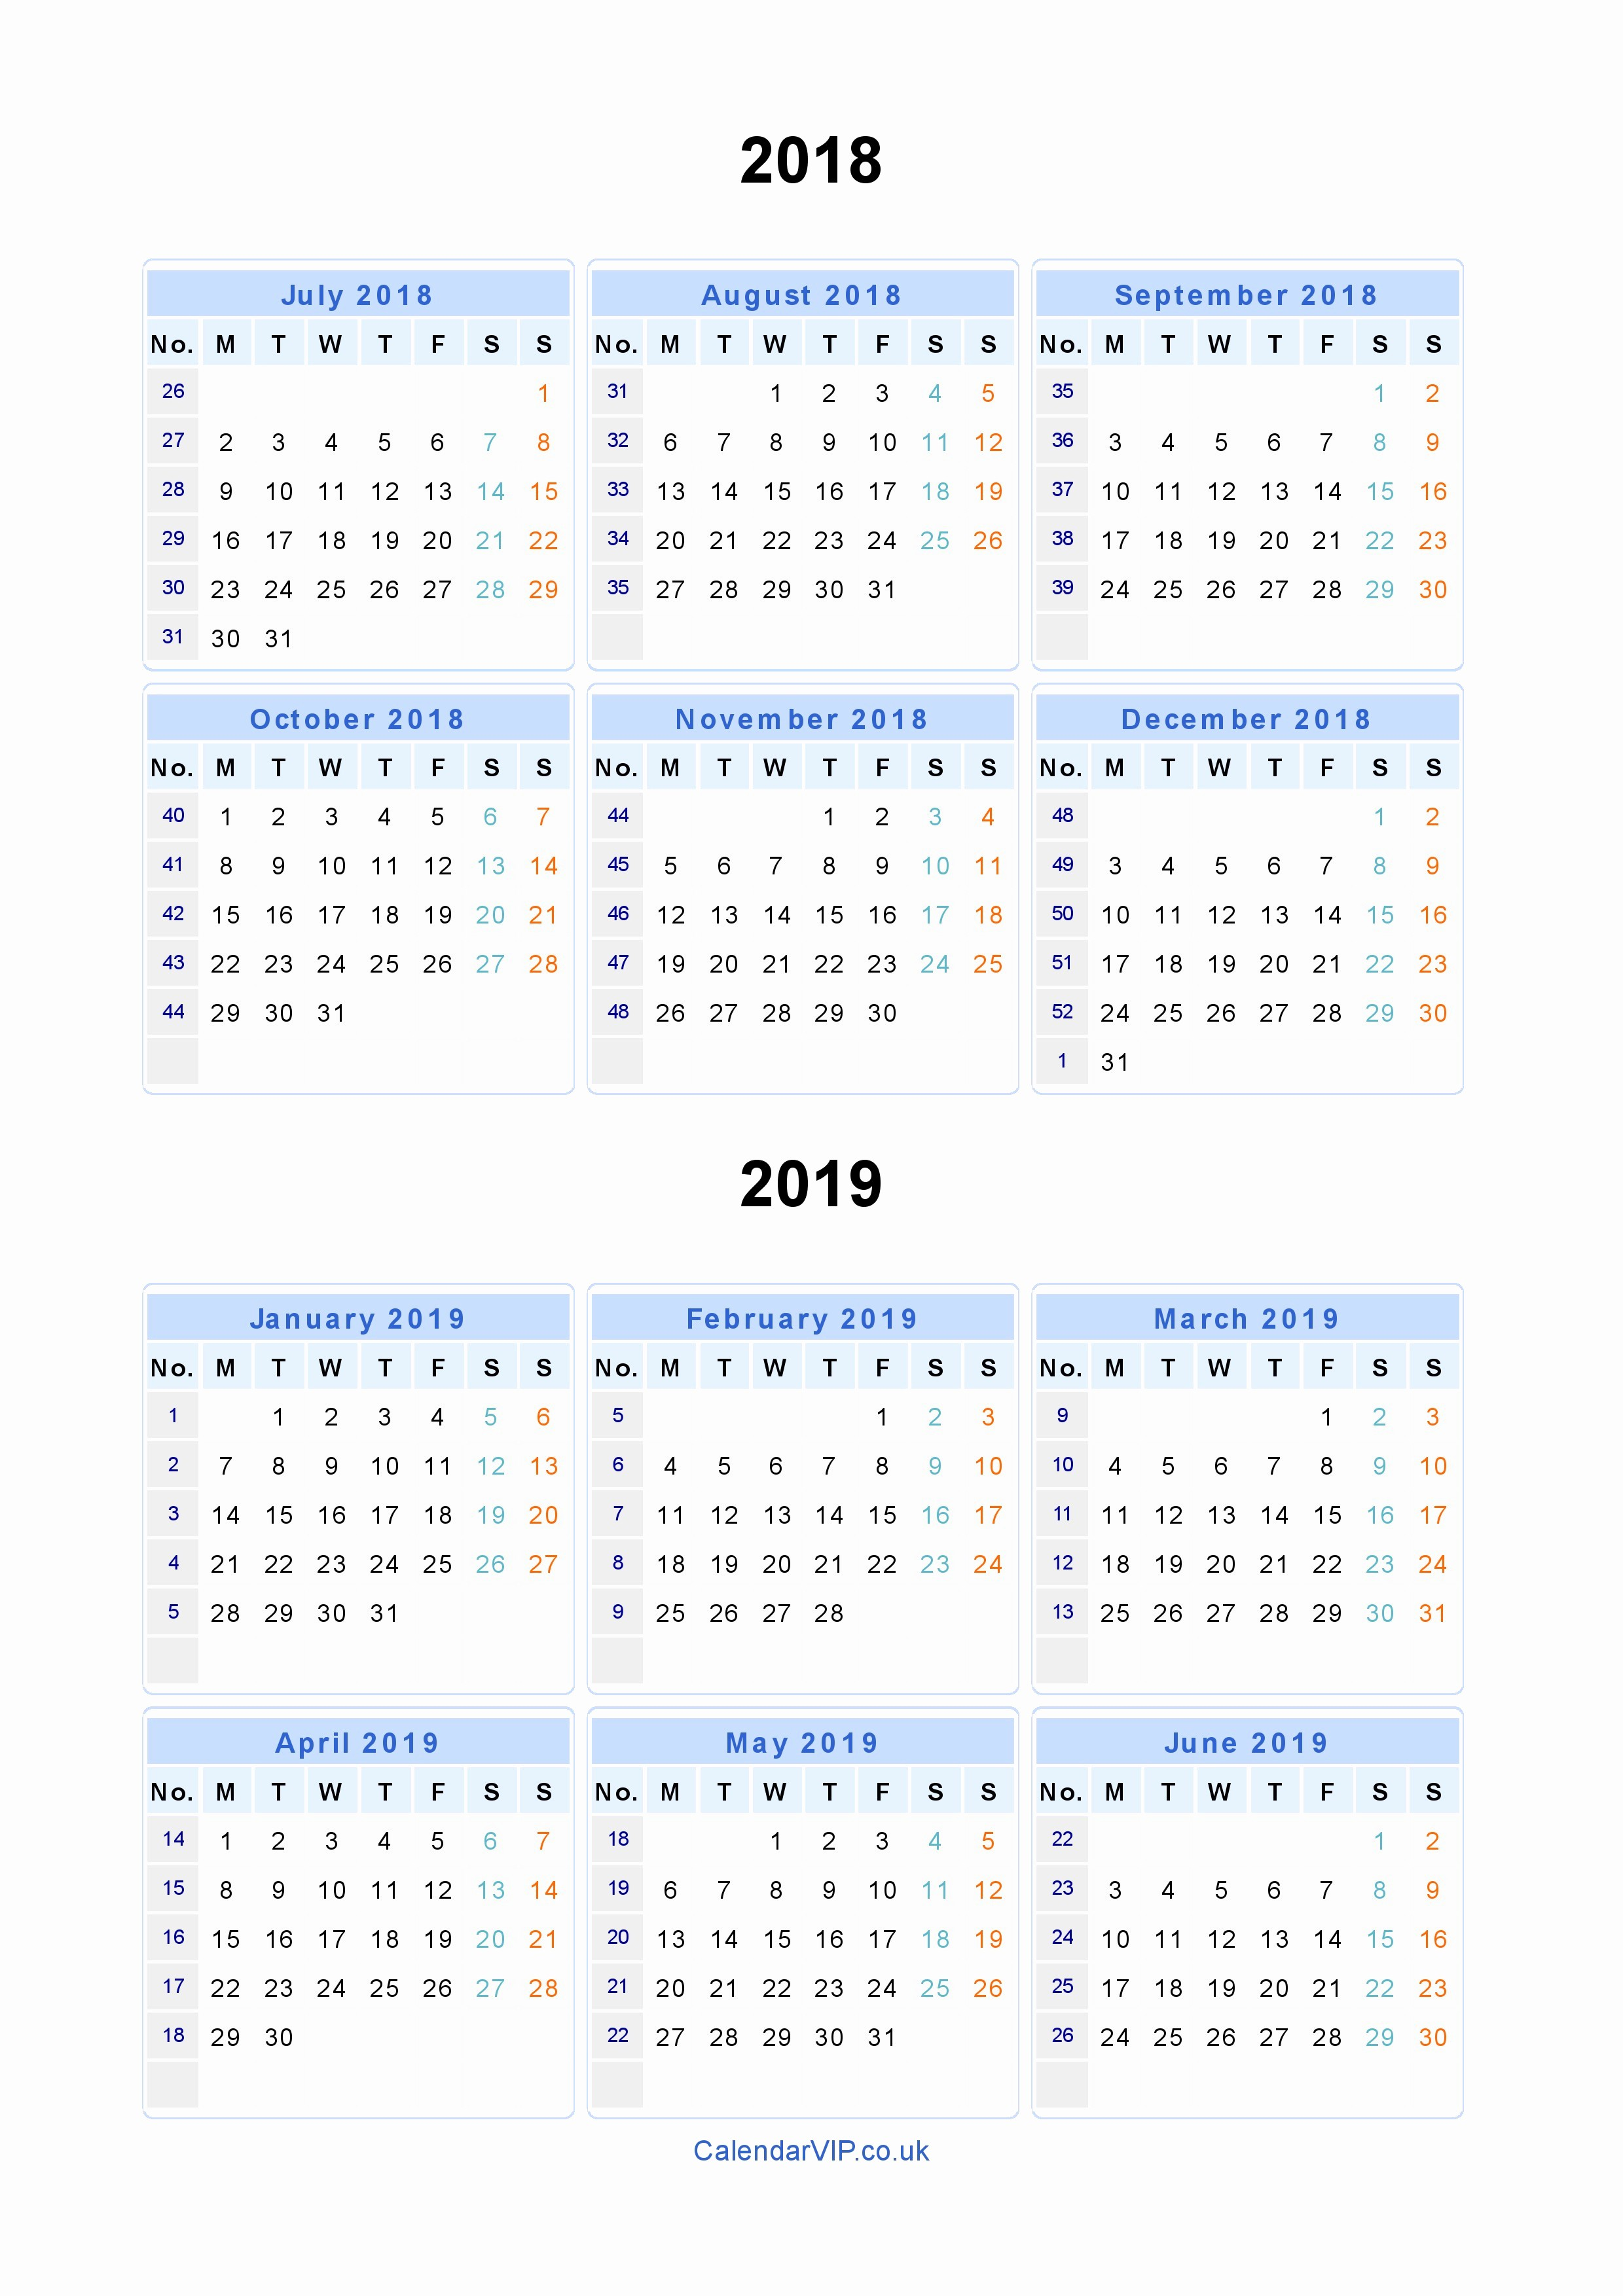 Printable Calendar 2018 and 2019 Luxury Split Year Calendars 2018 2019 Calendar From July 2018